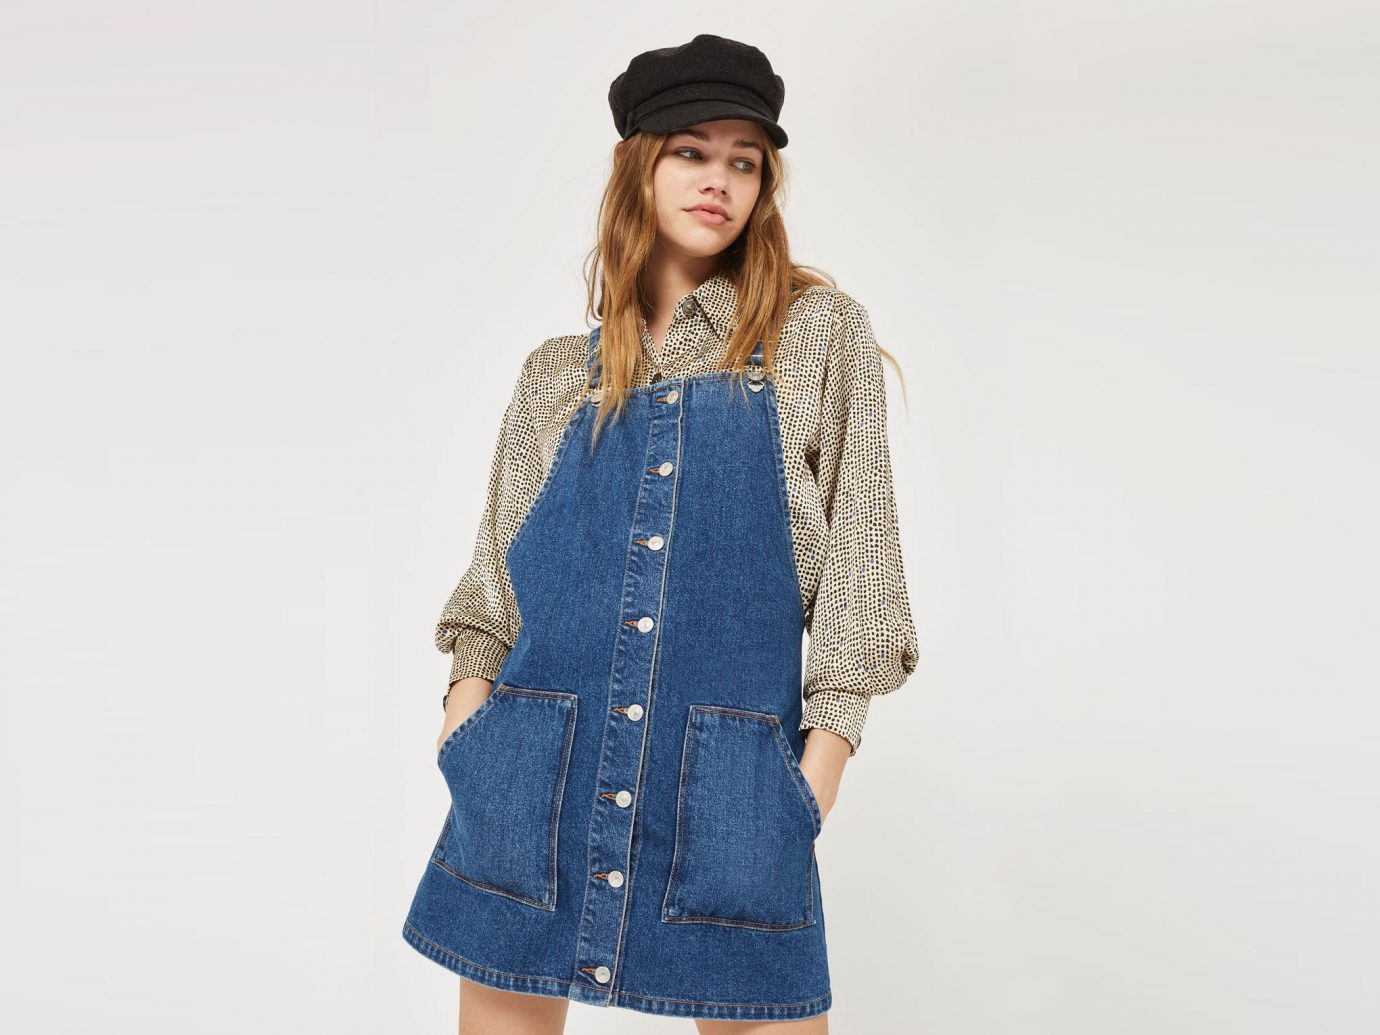 Style + Design Travel Shop person woman clothing standing denim wearing fashion model outerwear shoulder jeans headgear sleeve lady neck coat posing